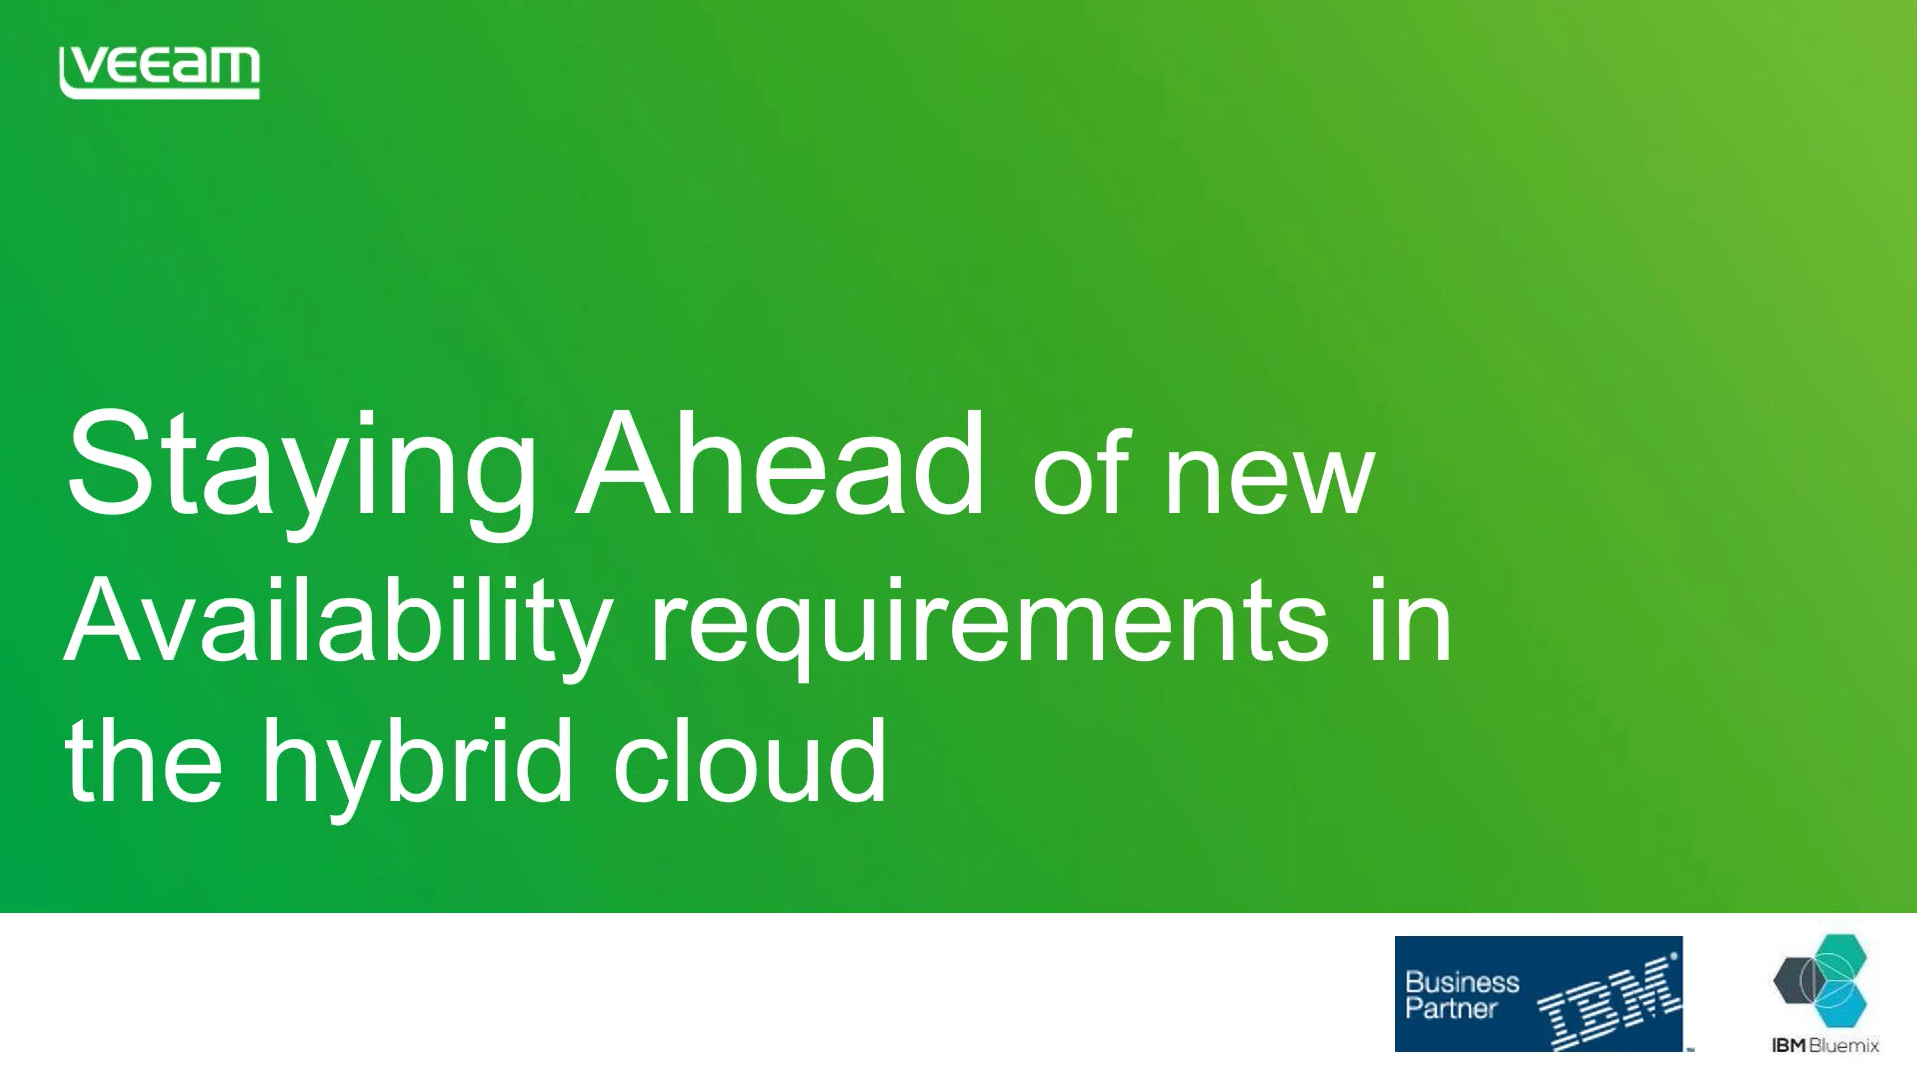 Veeam & IBM: Staying Ahead of New Availability Requirements with the Hybrid Cloud